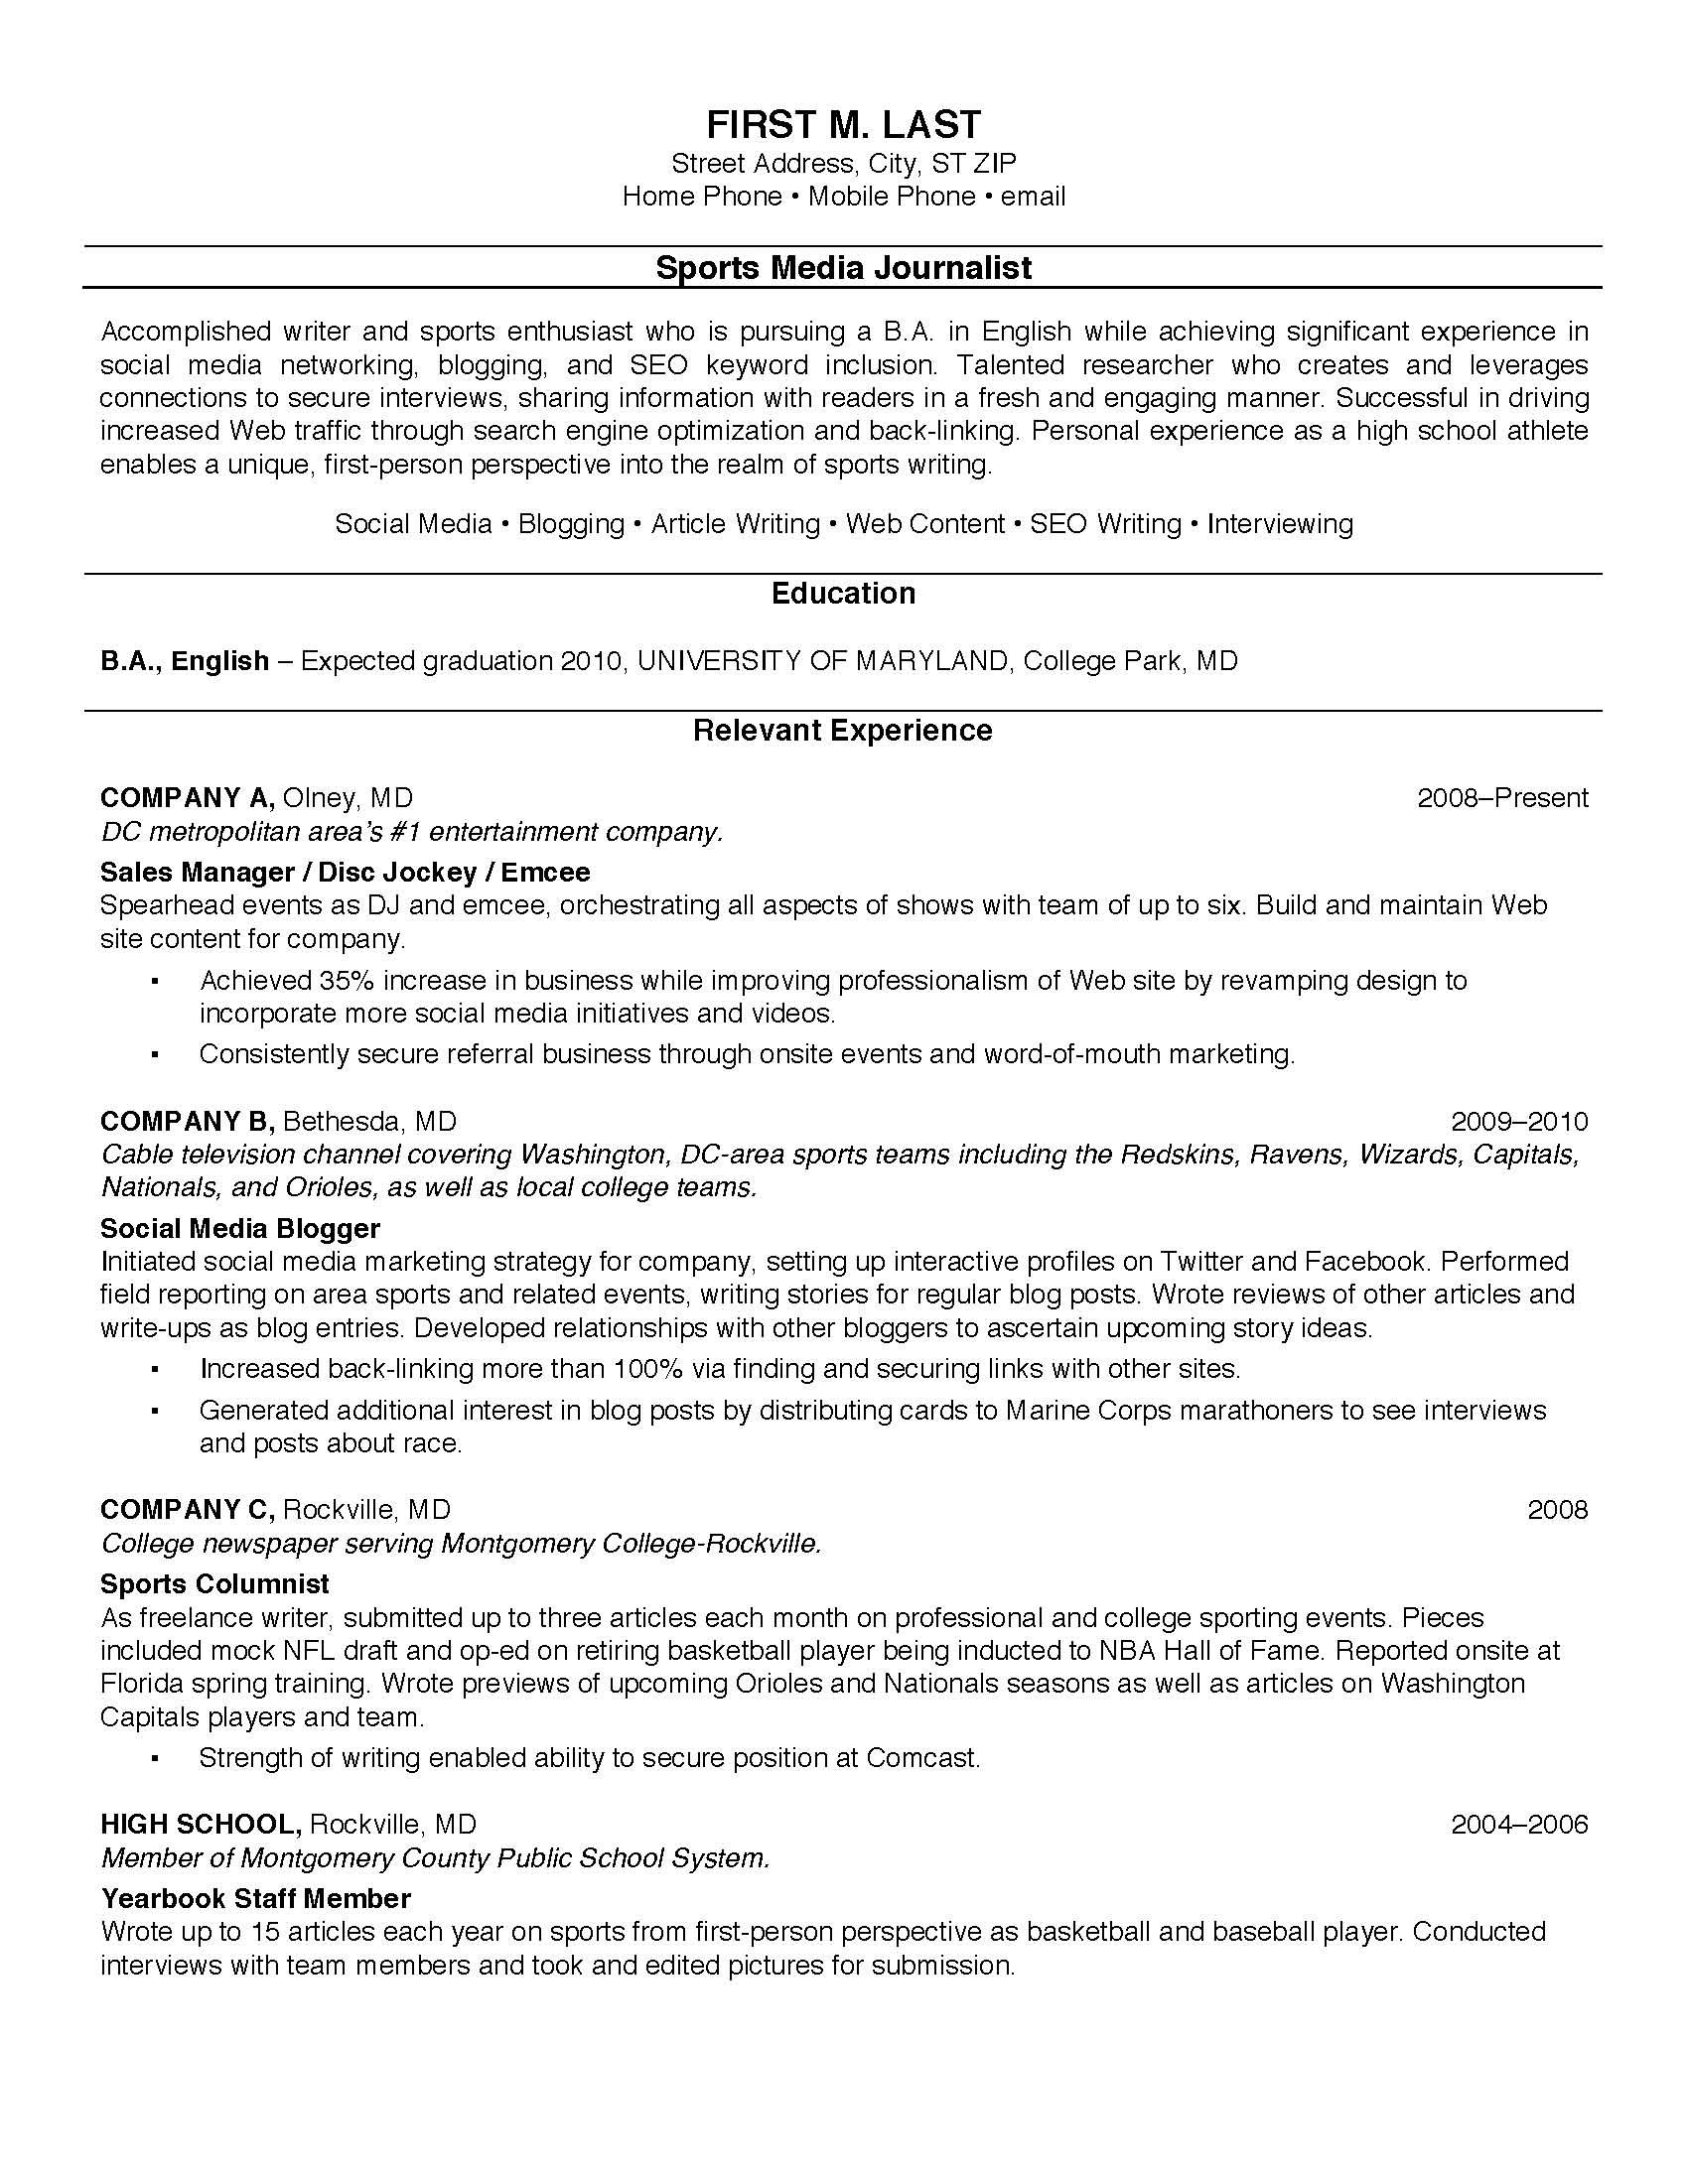 example of resume for teenager - Example Sample Resume